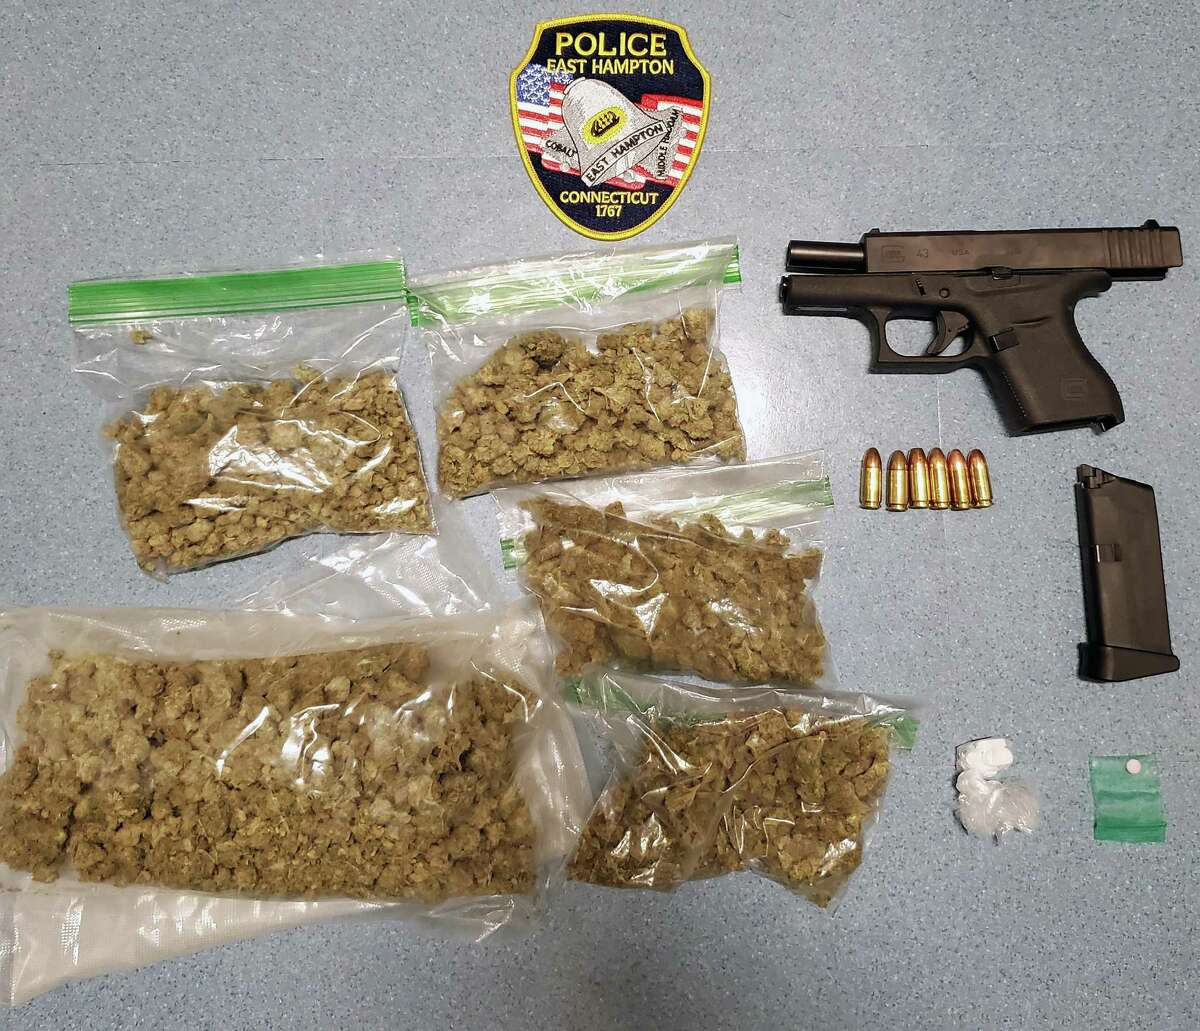 Half a pound of marijuana and a gun with the serial number scratched off were found by officers at the scene of an investigation in East Hampton, Conn., on Oct. 6, 2021, police said. Federal and local authorities continue to try to figure out who owned the gun.